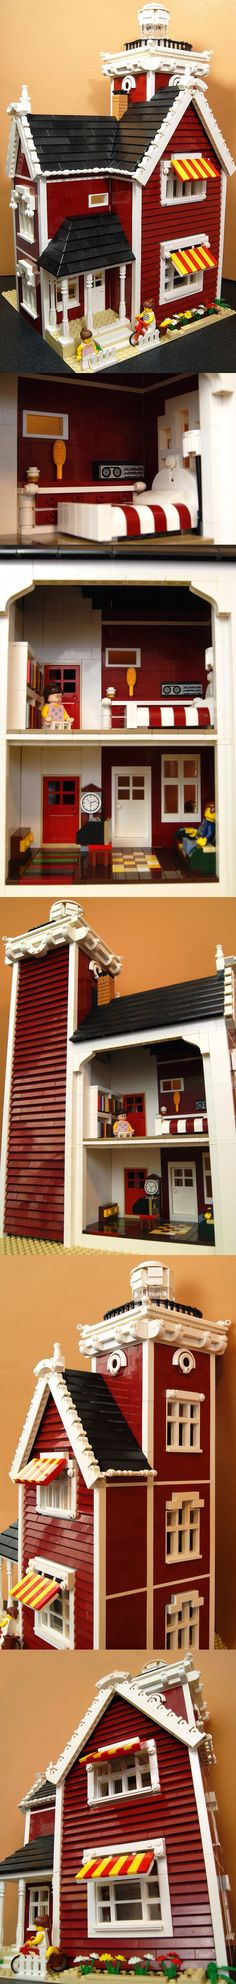 This combines my love of Lego and Dolls Houses